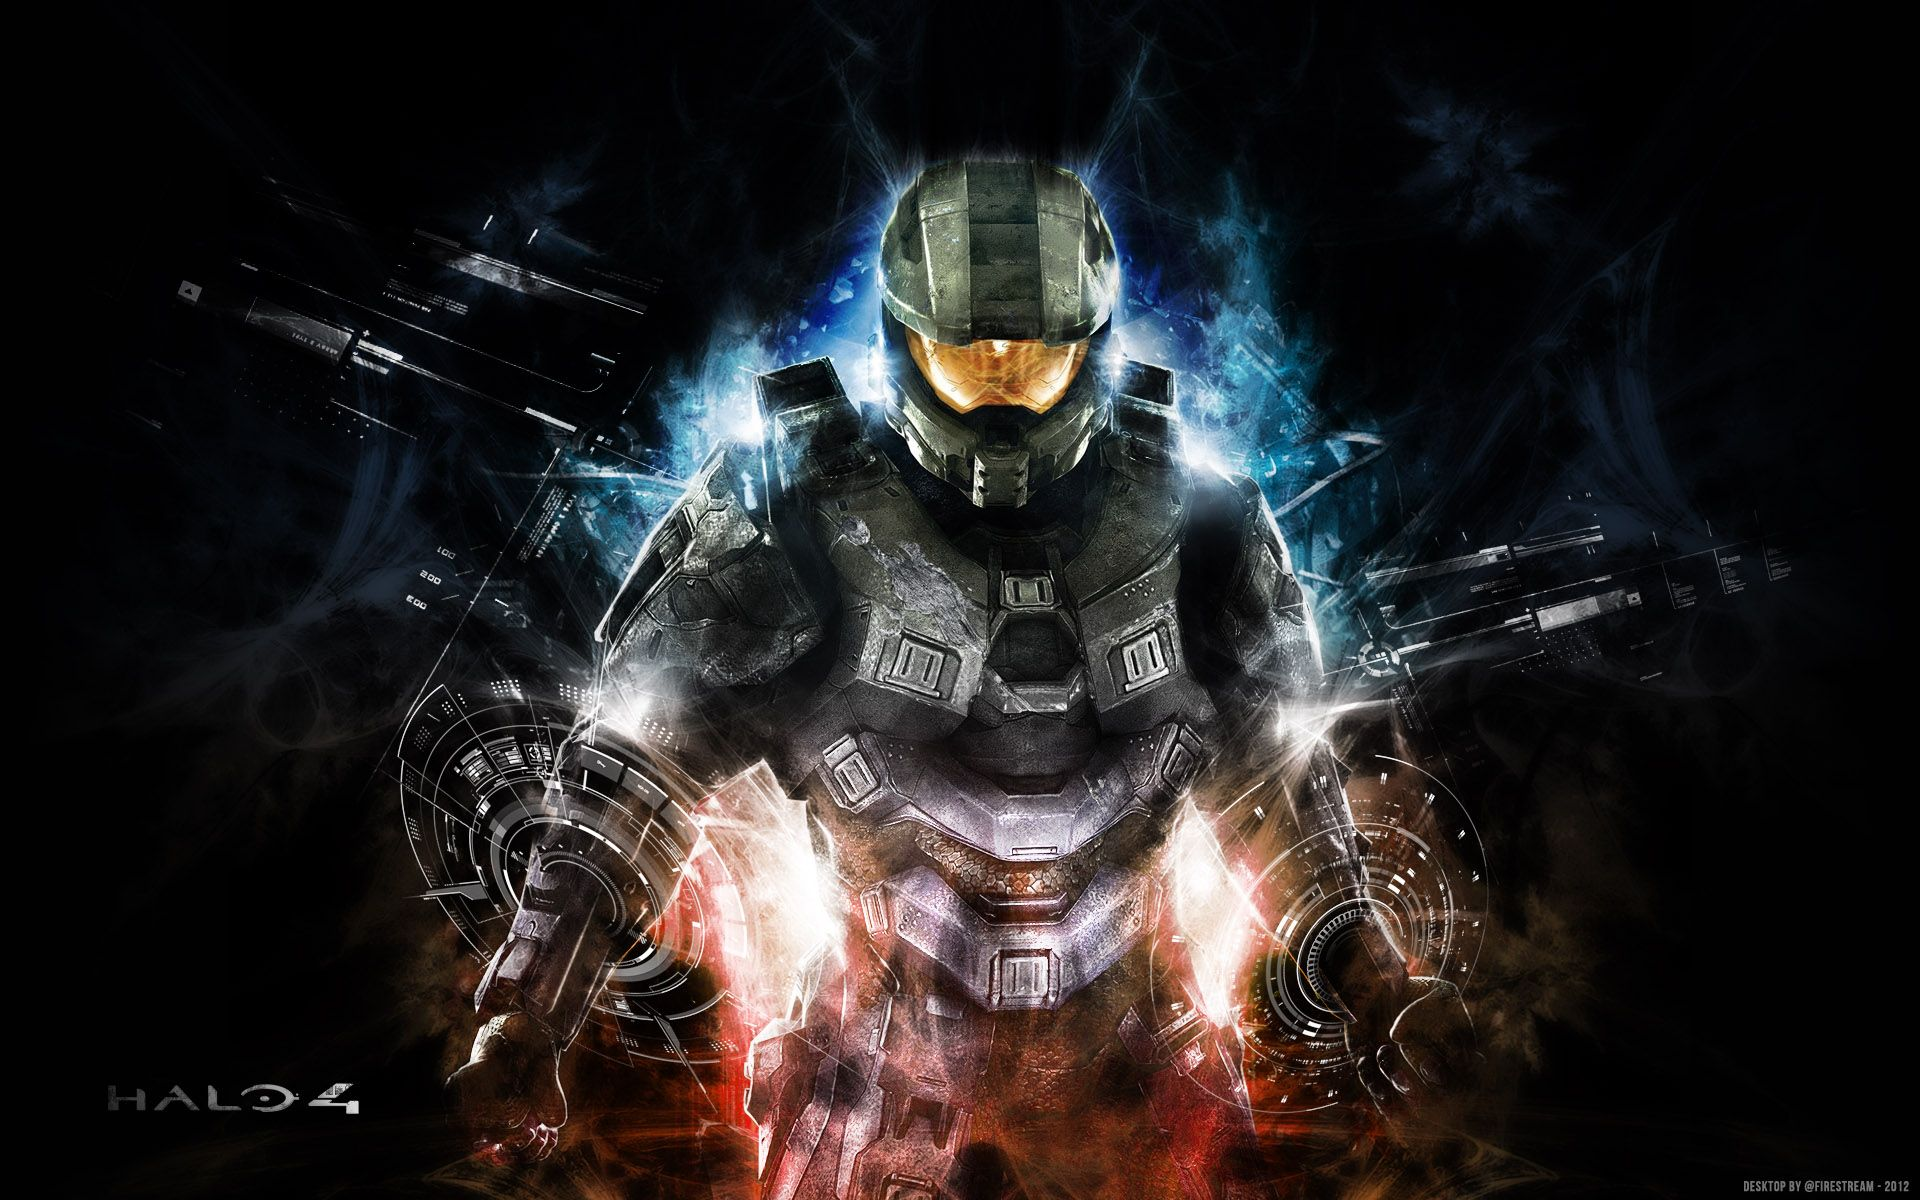 Awesome Halo Theme With HD Wallpapers 1280x720 4 51